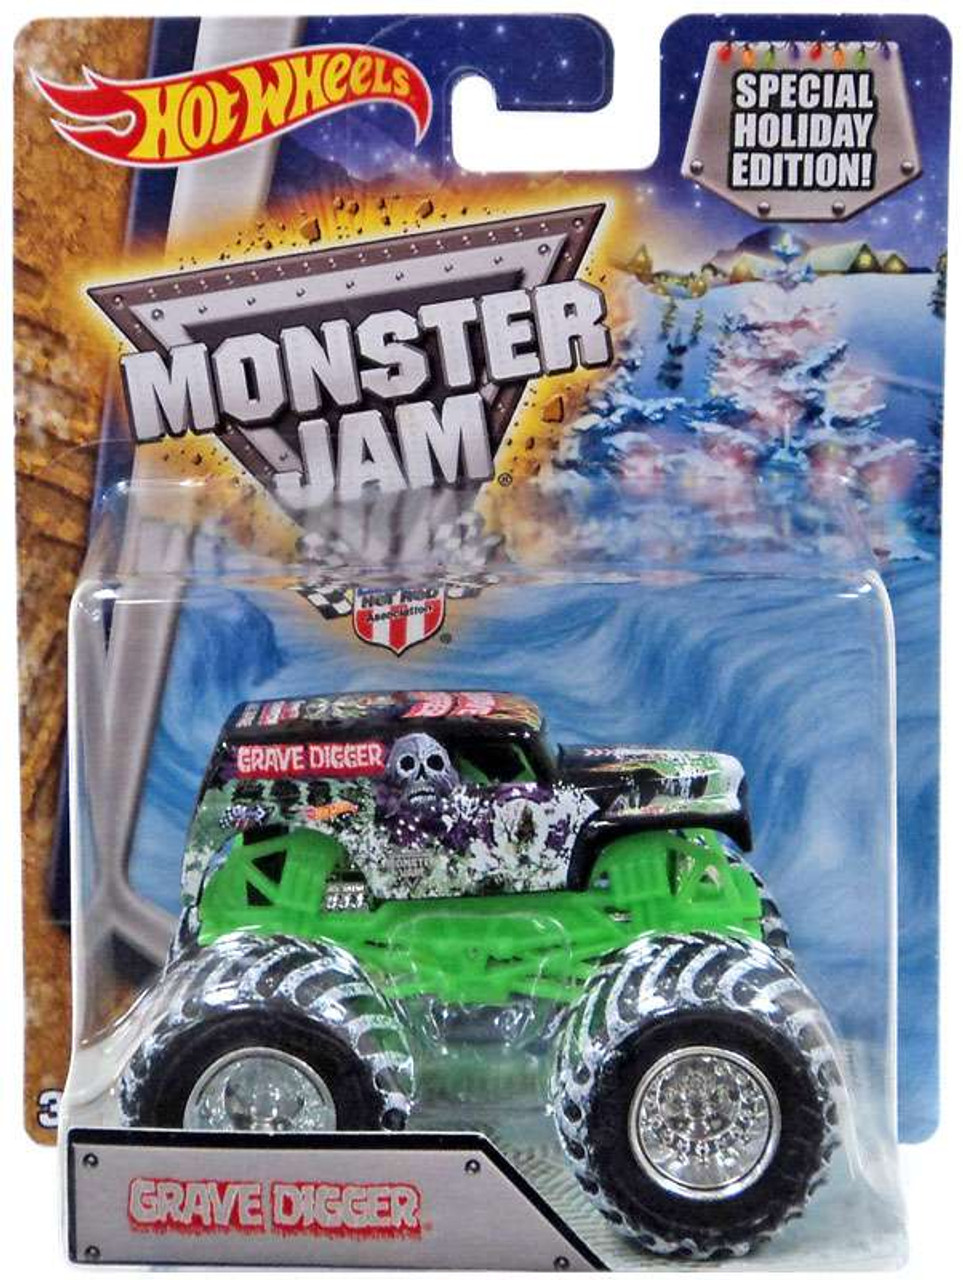 bc4778b3a88a Hot Wheels Monster Jam 25 Grave Digger 164 Die-Cast Car Special Holiday  Edition Mattel Toys - ToyWiz